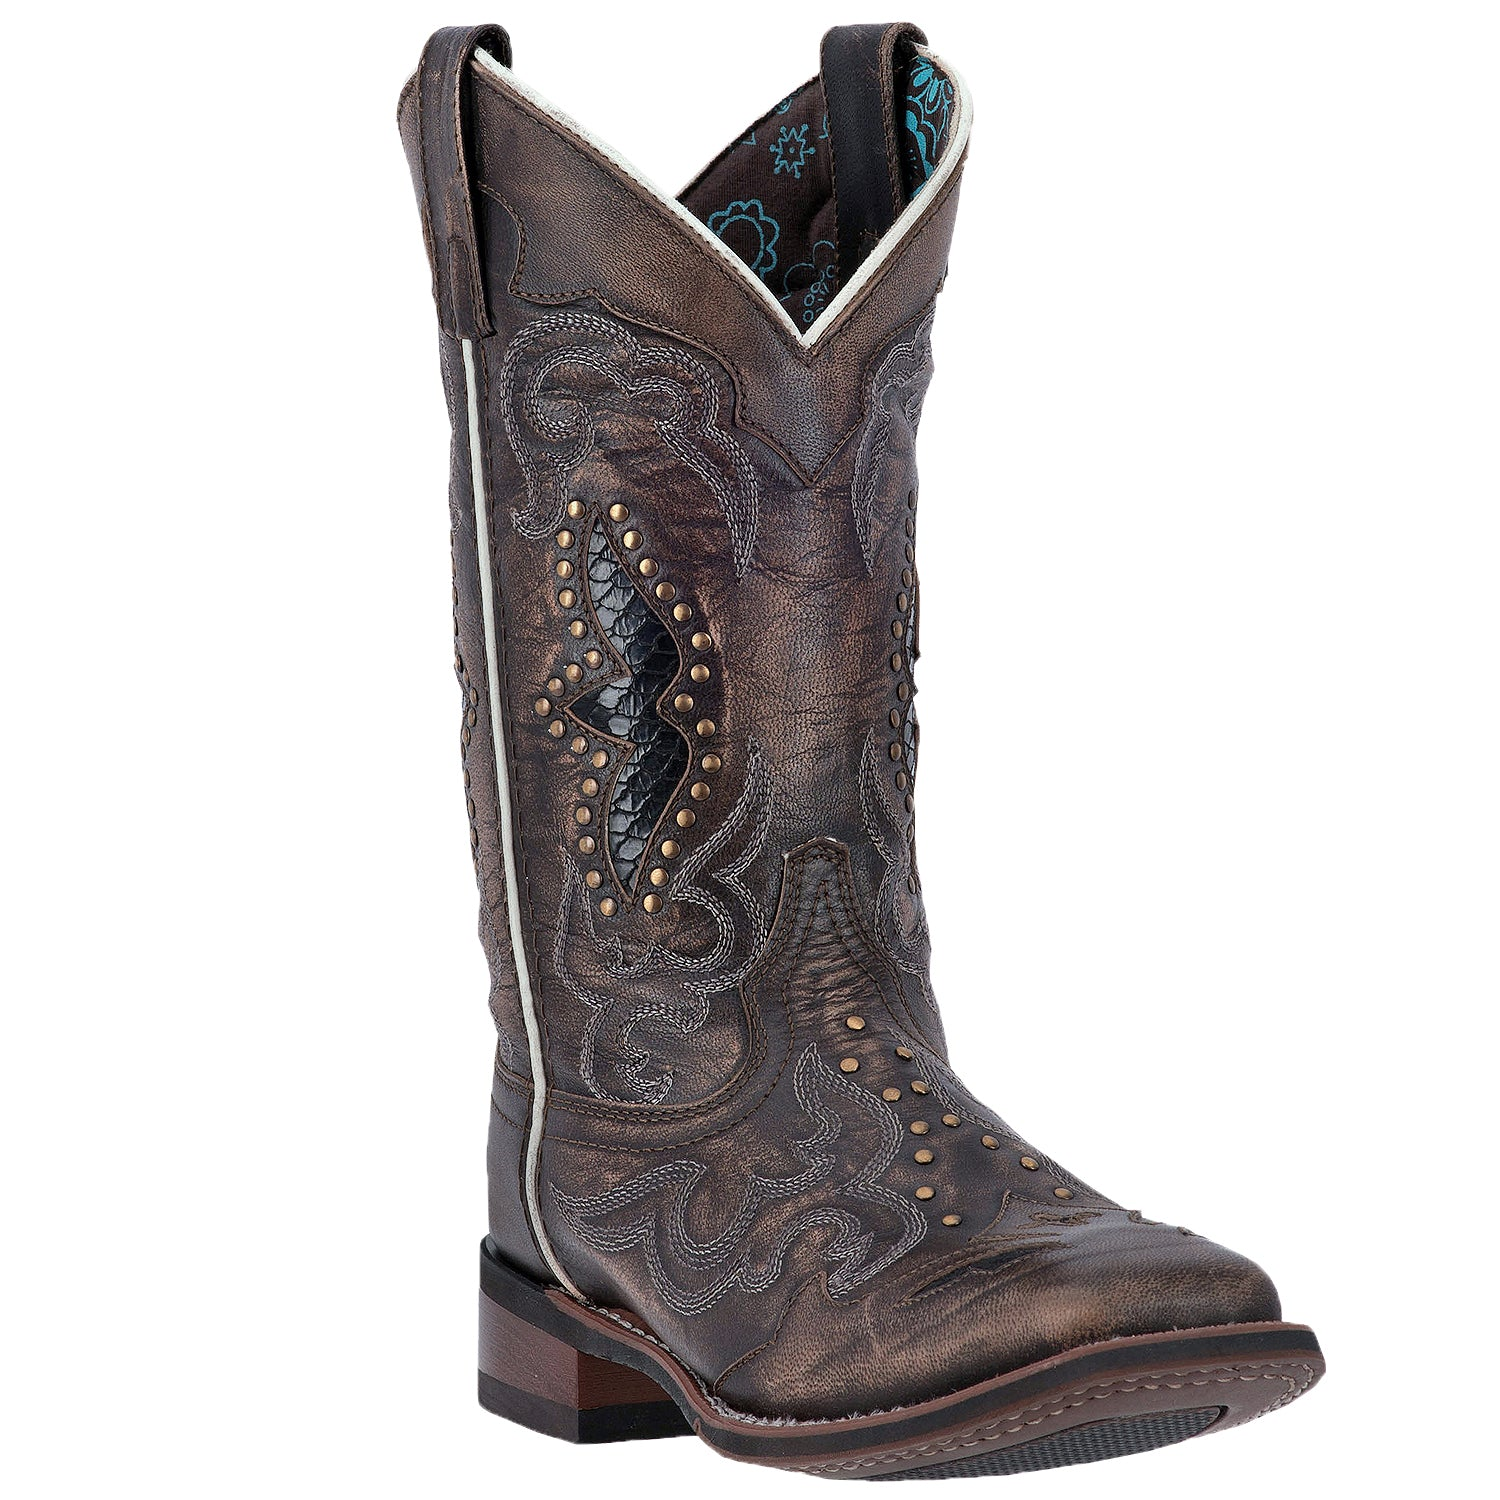 SPELLBOUND LEATHER BOOT 4254272487466